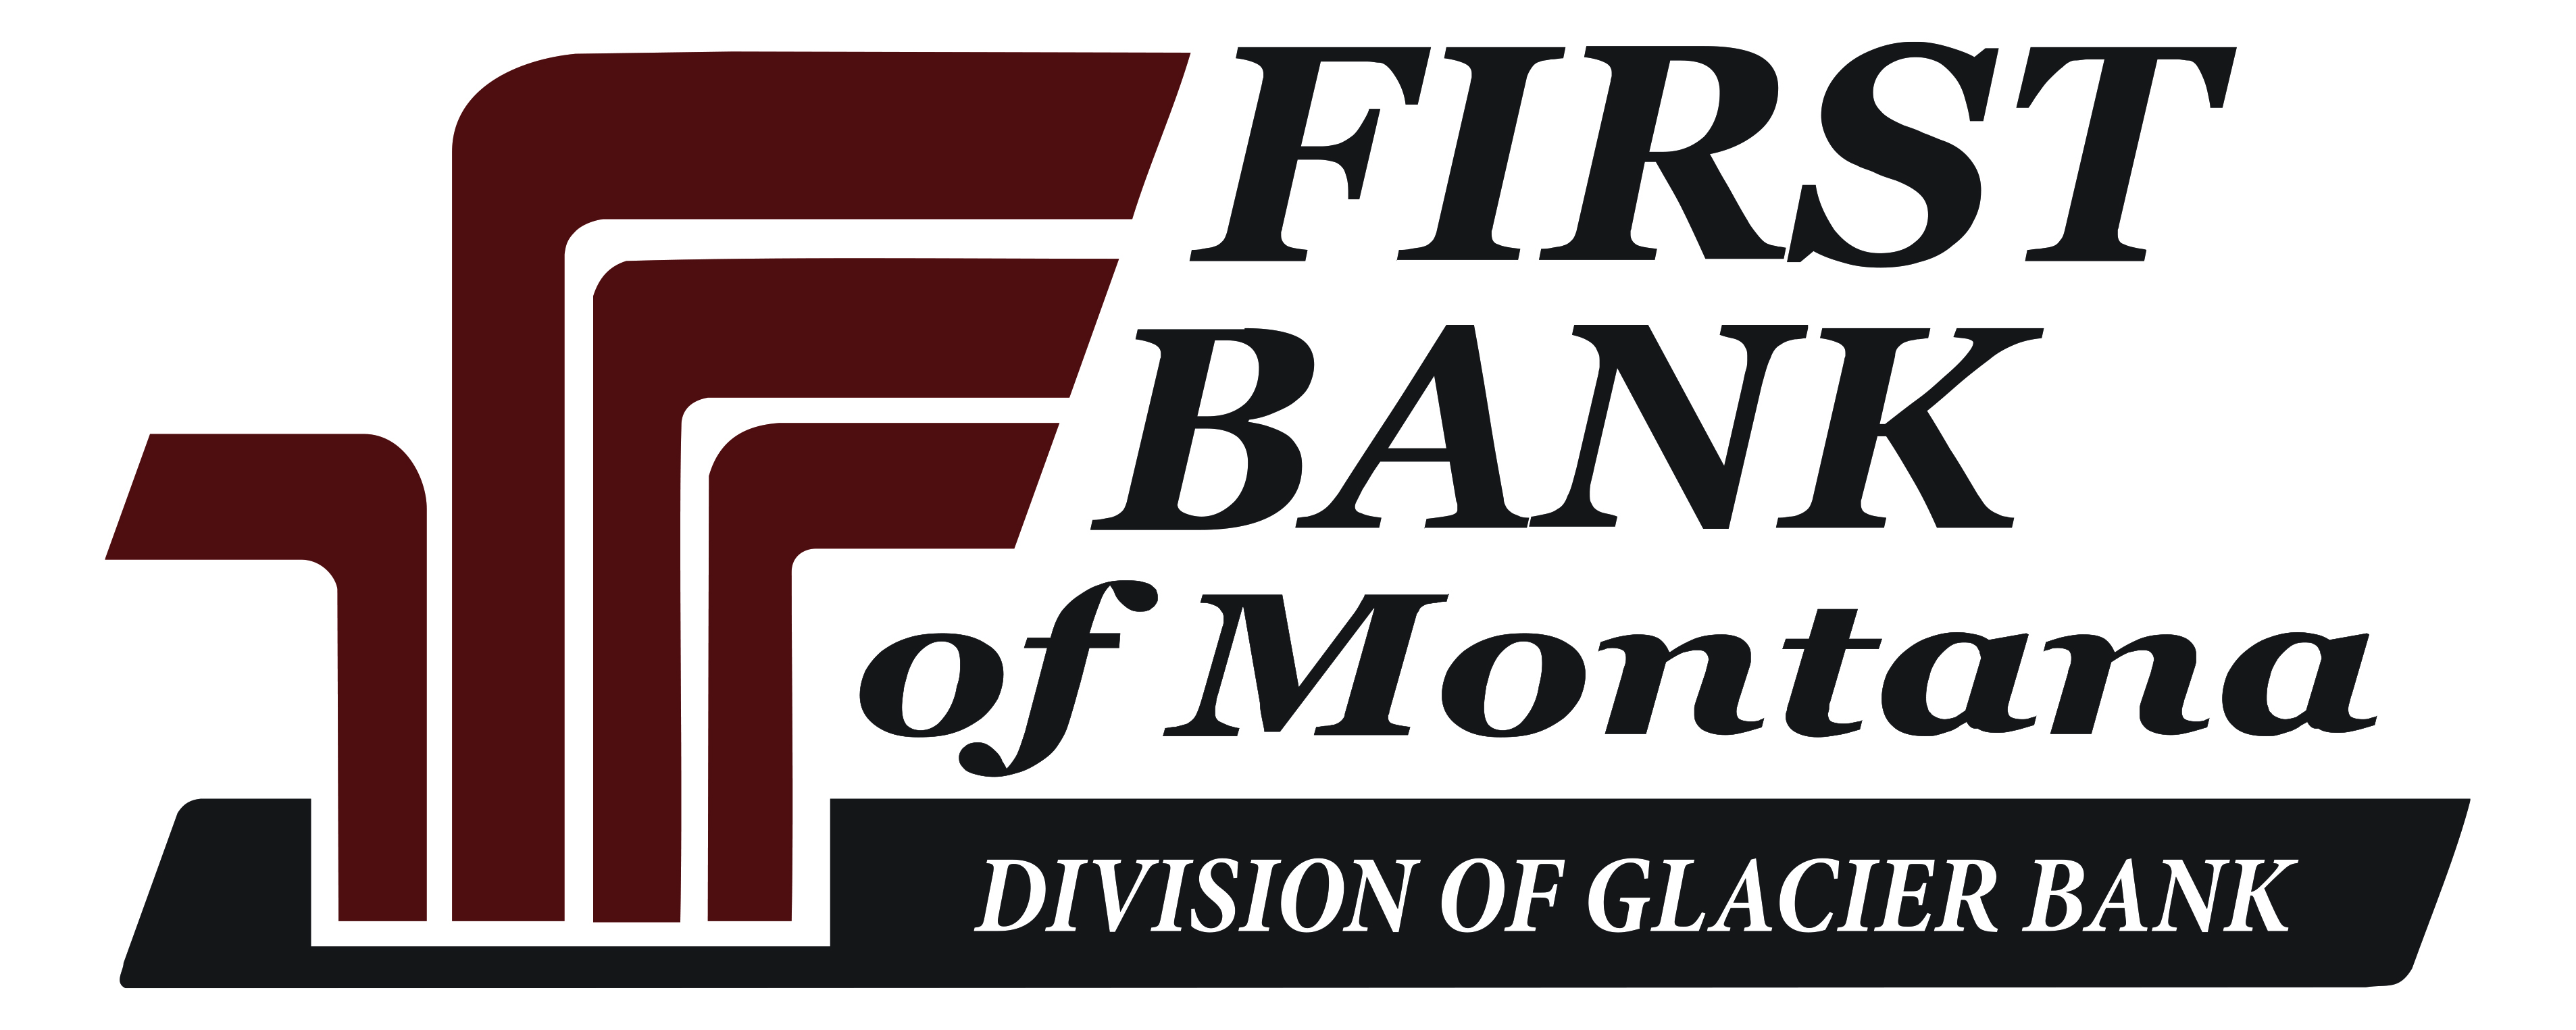 First Bank of Montana logo